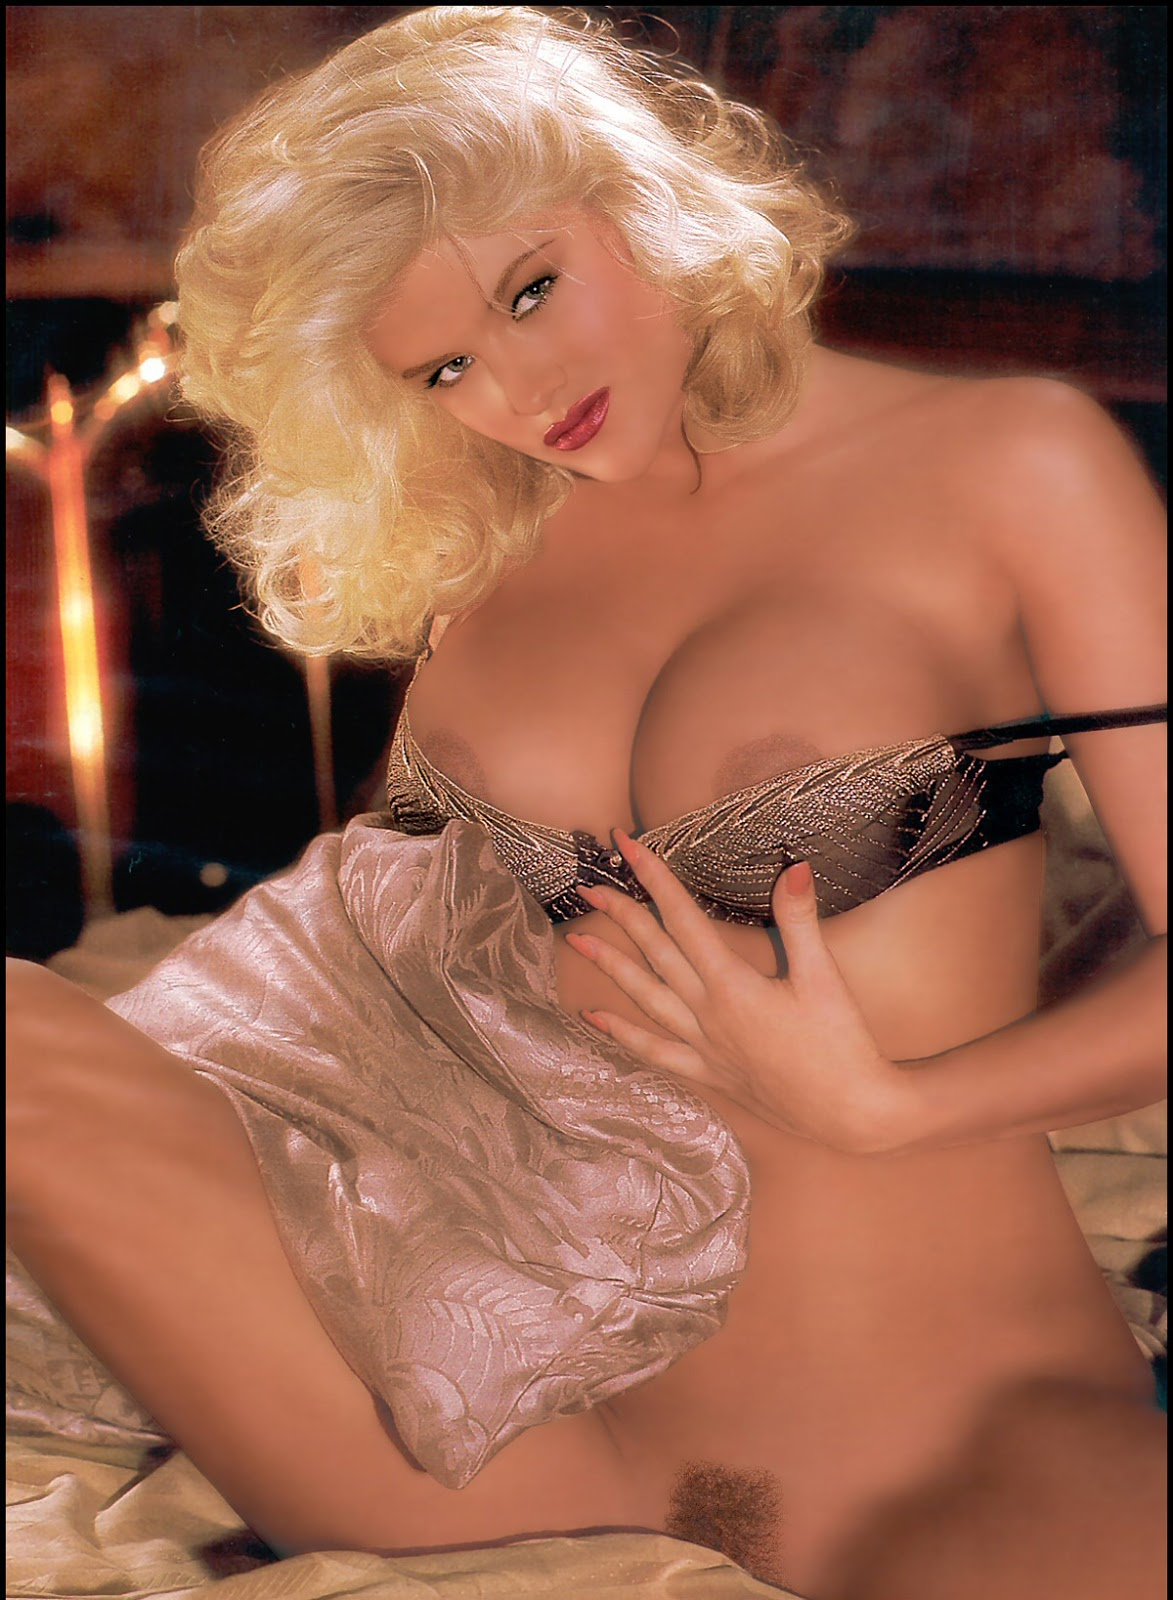 Can Anna nicole smith porn video sorry